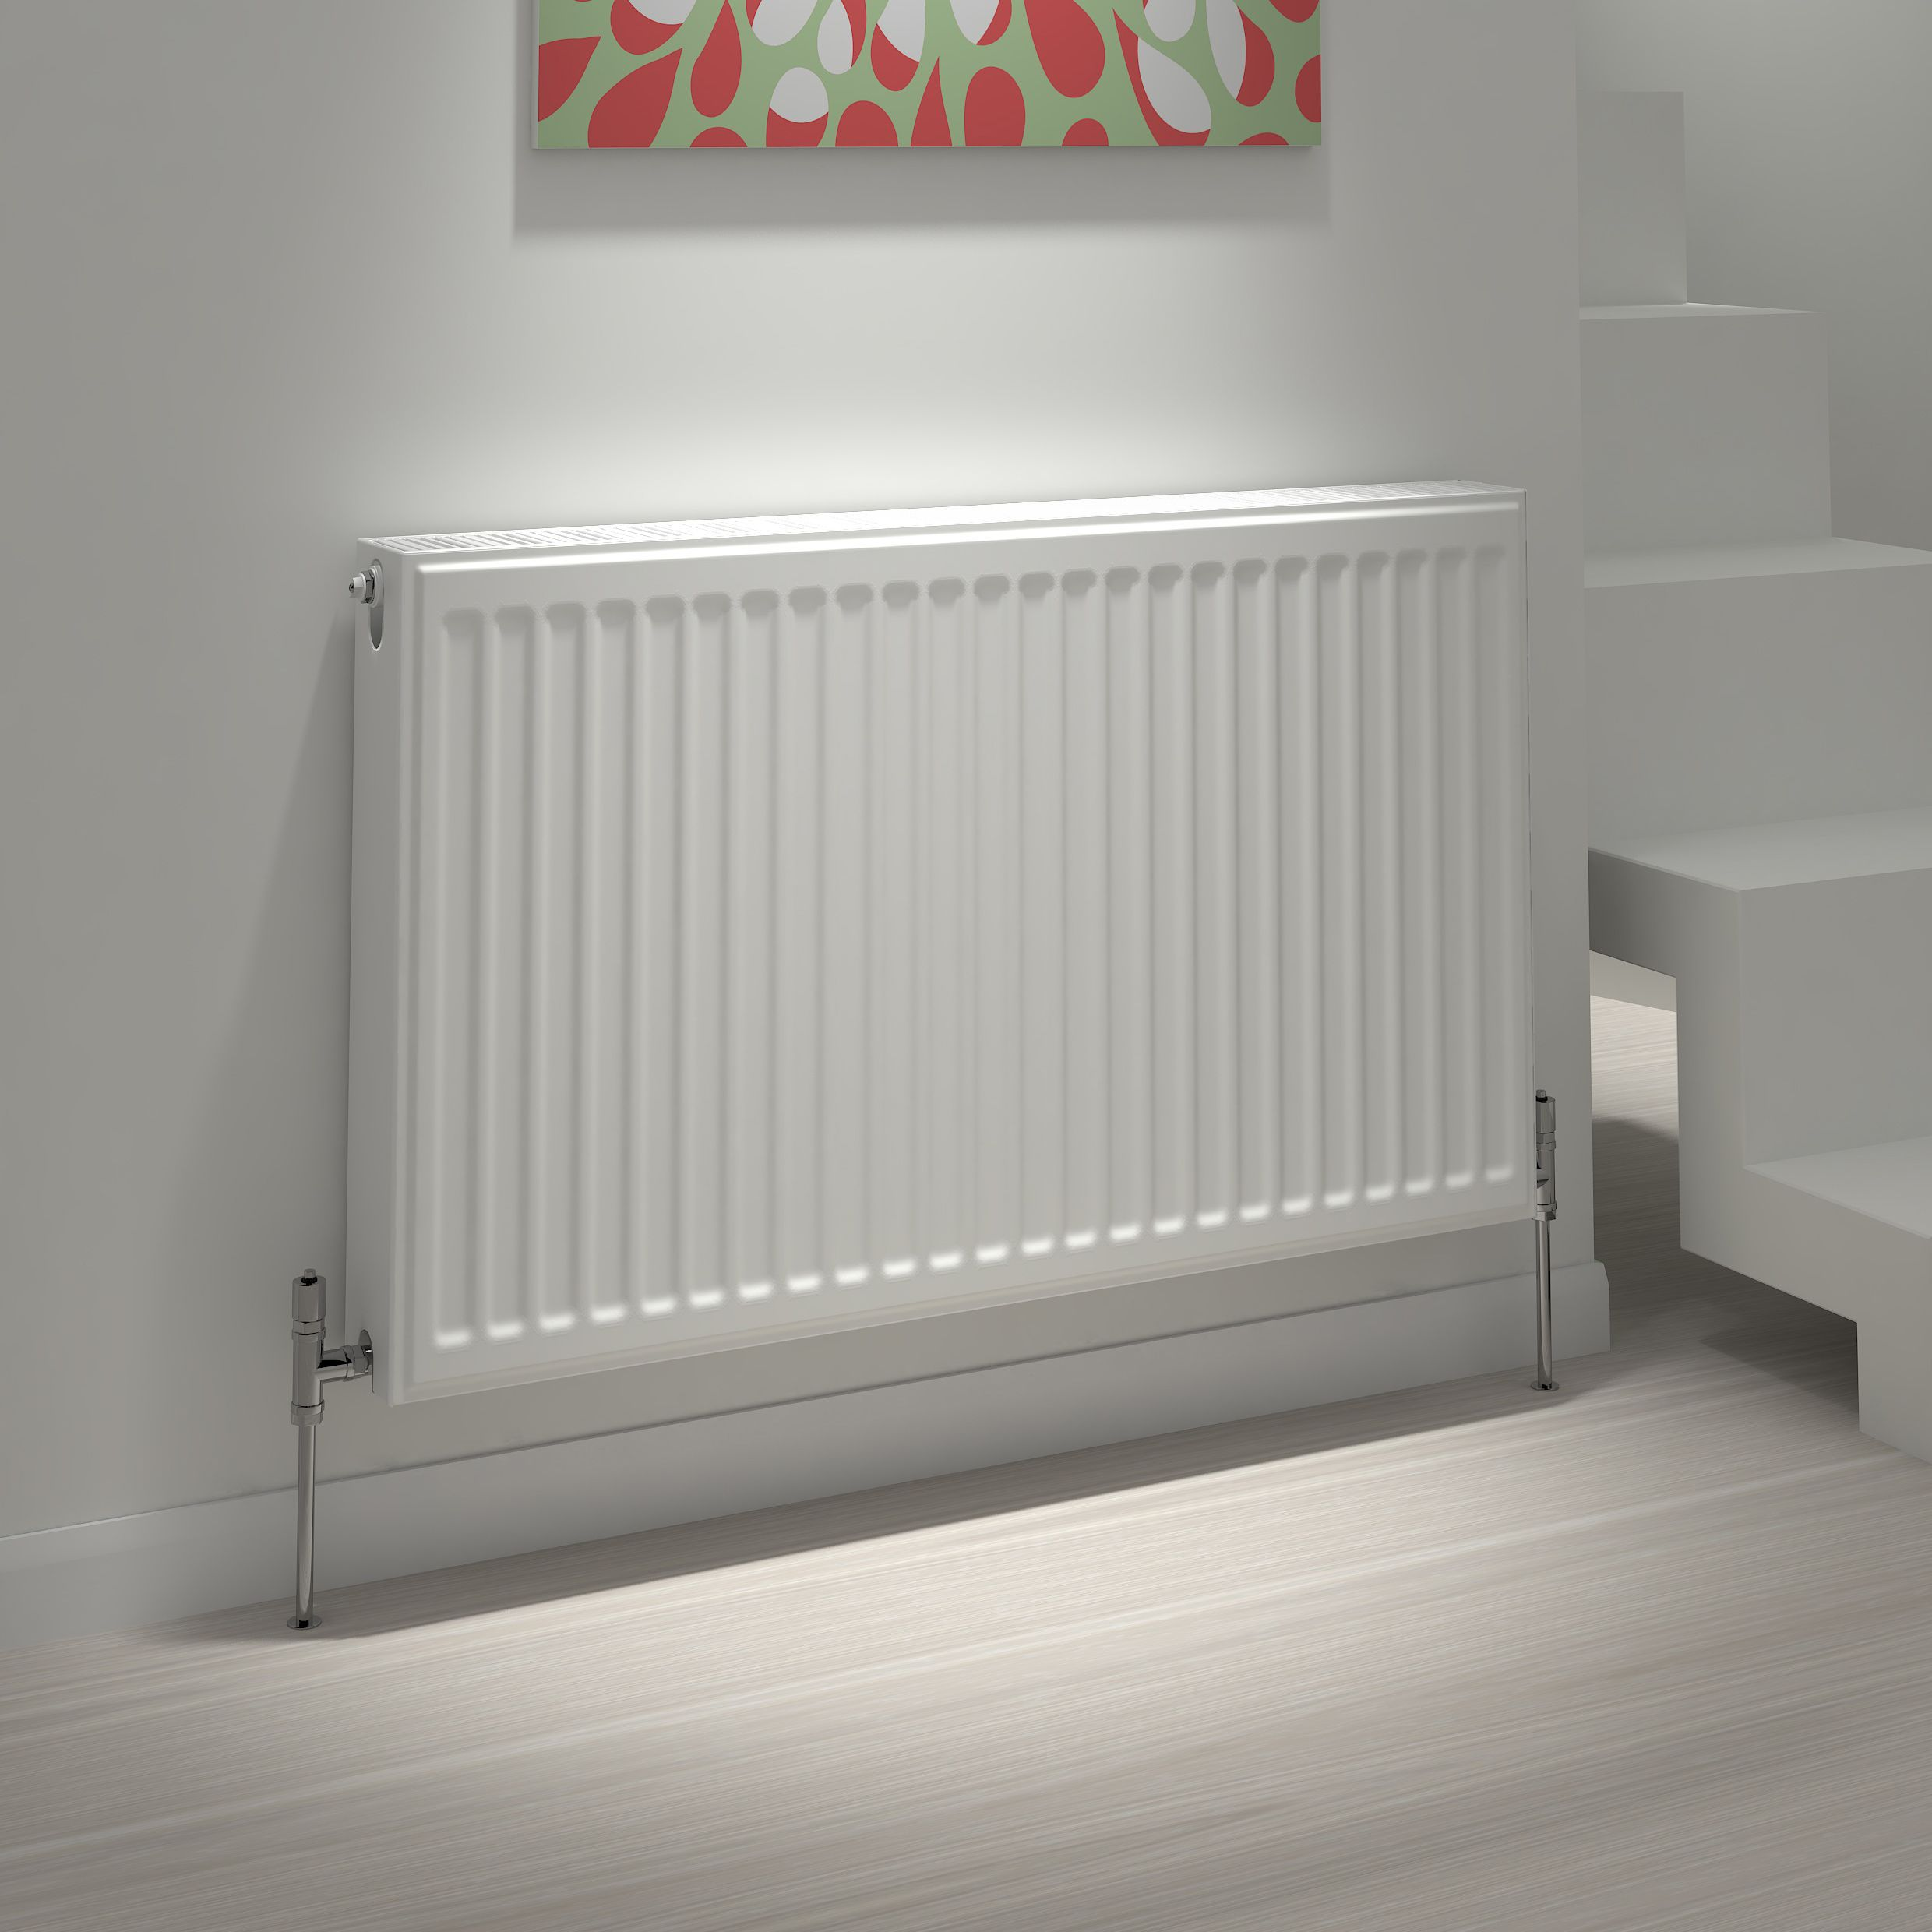 Kudox Type 11 single Convector radiator White, (H)400mm